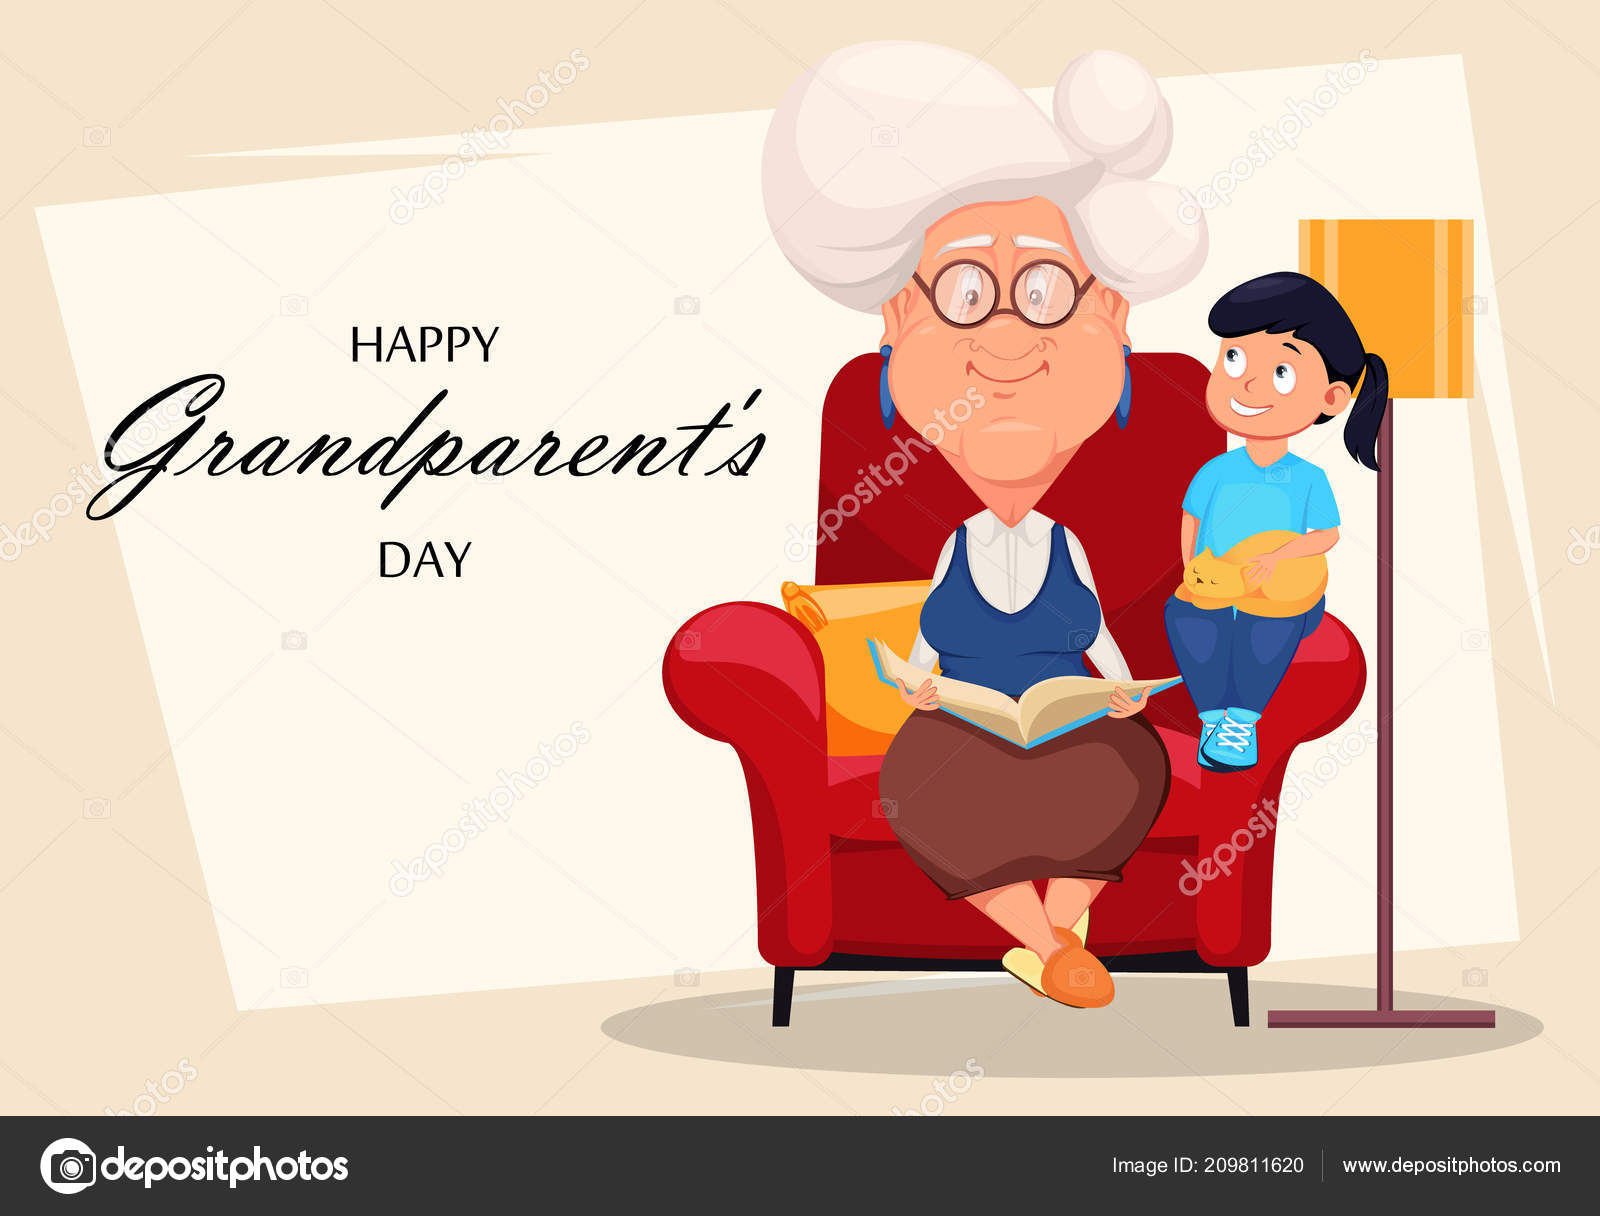 Happy grandparents day greeting card silver haired grandma sitting happy grandparents day greeting card silver haired grandma sitting armchair stock vector m4hsunfo